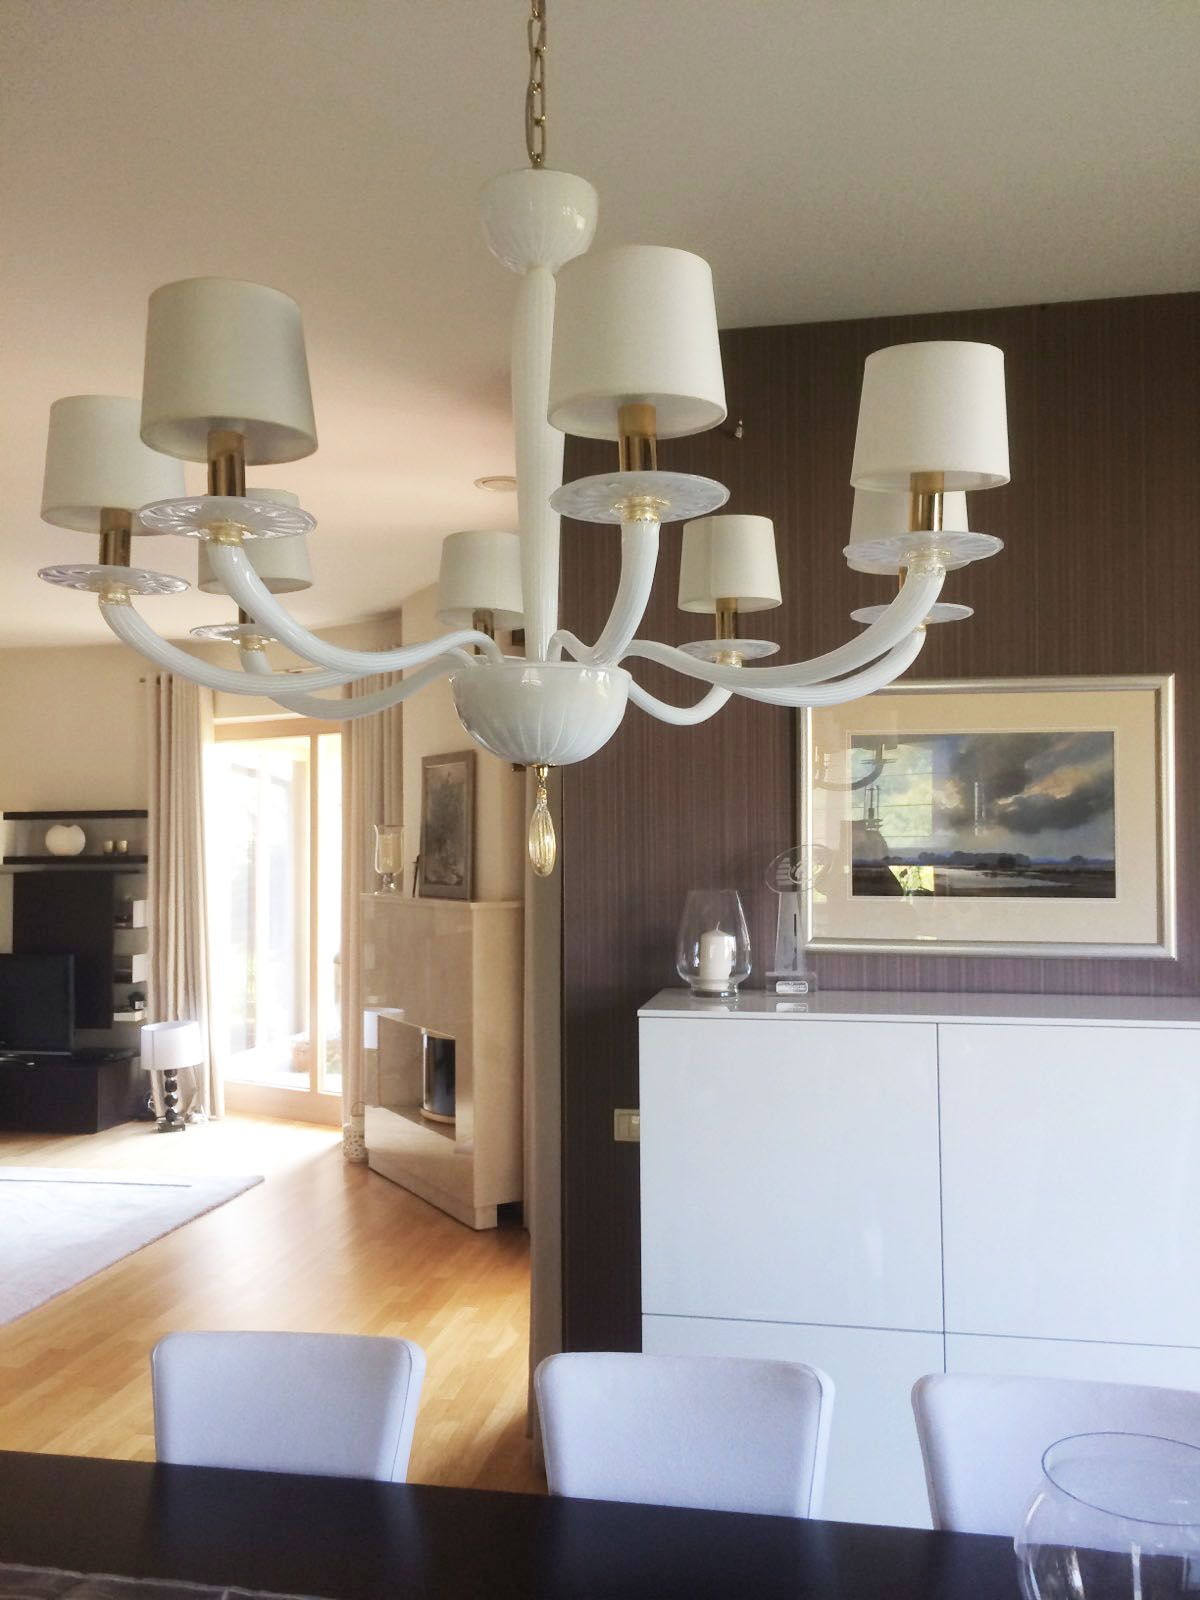 Serenade one of the most appreciated chandeliers of our lighting collections were